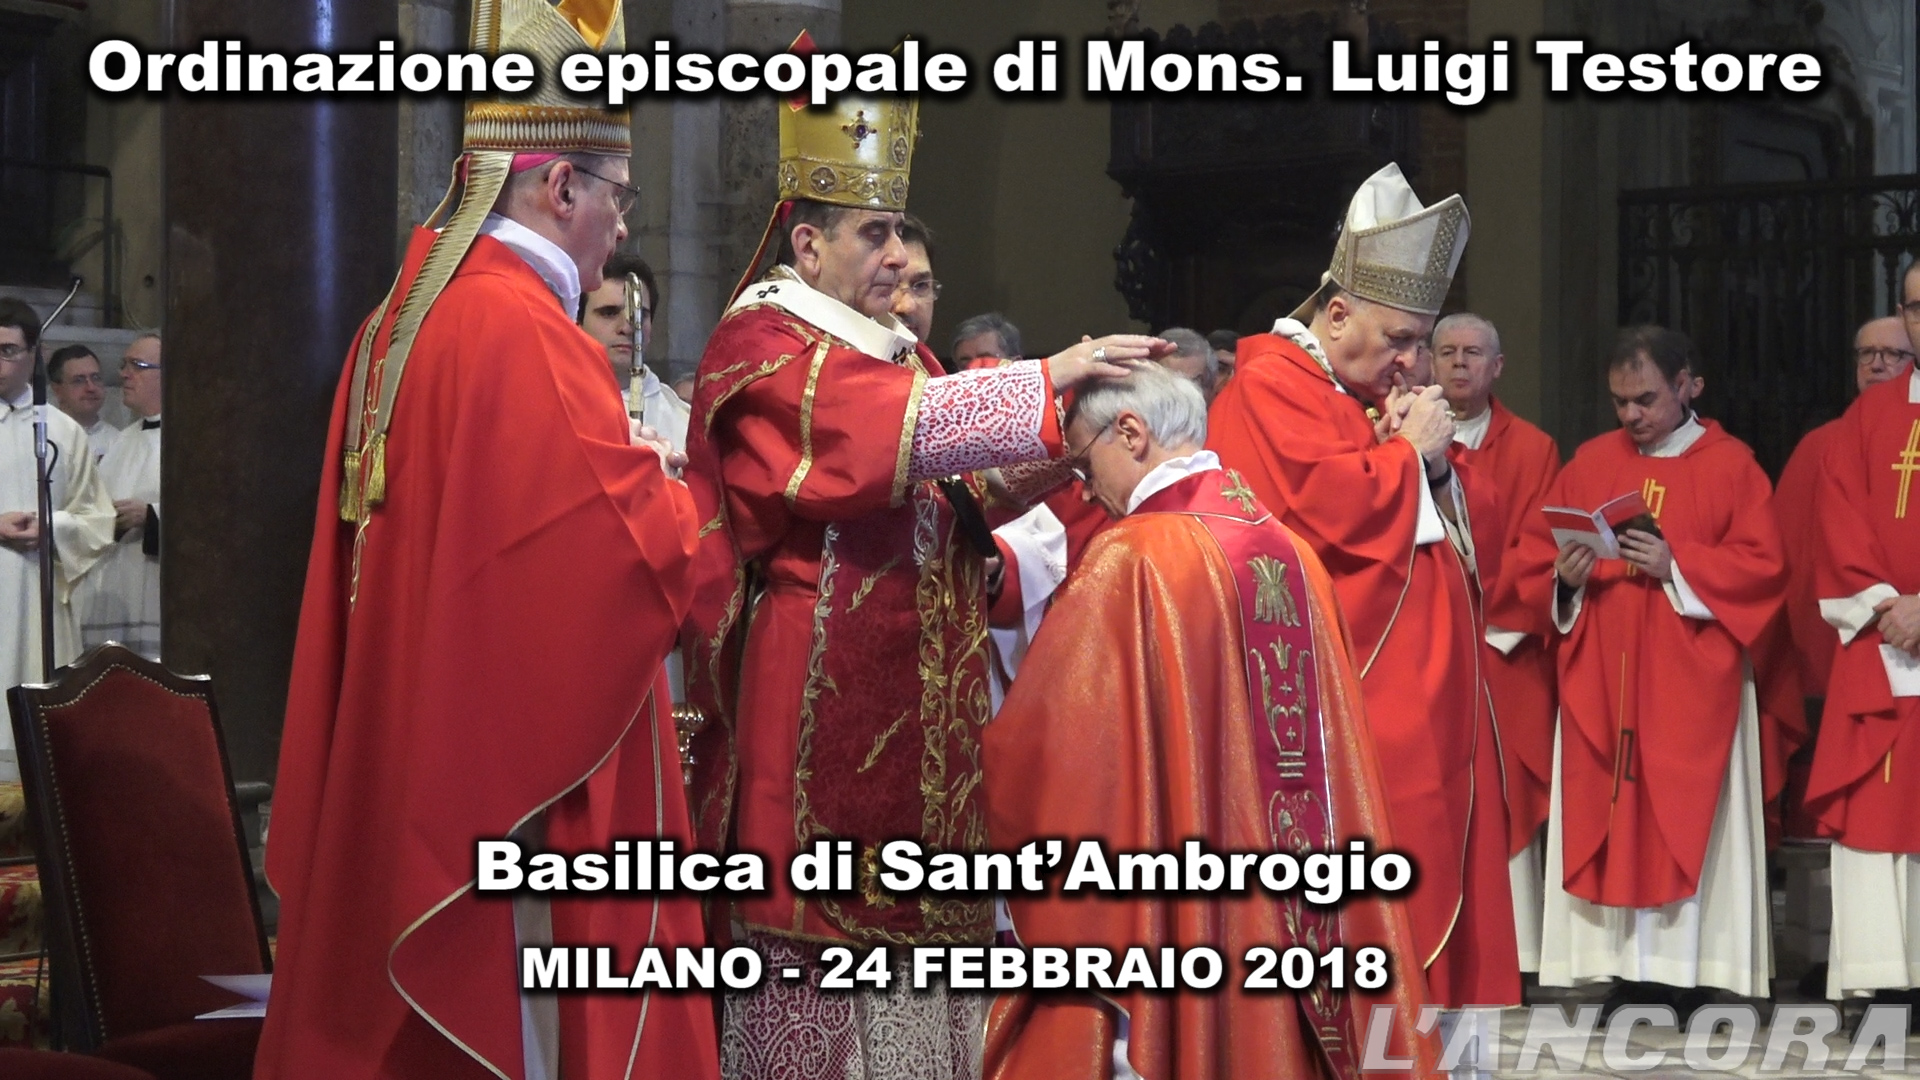 Milano - Ordinazione episcopale di Mons. Luigi Testore (VIDEO)